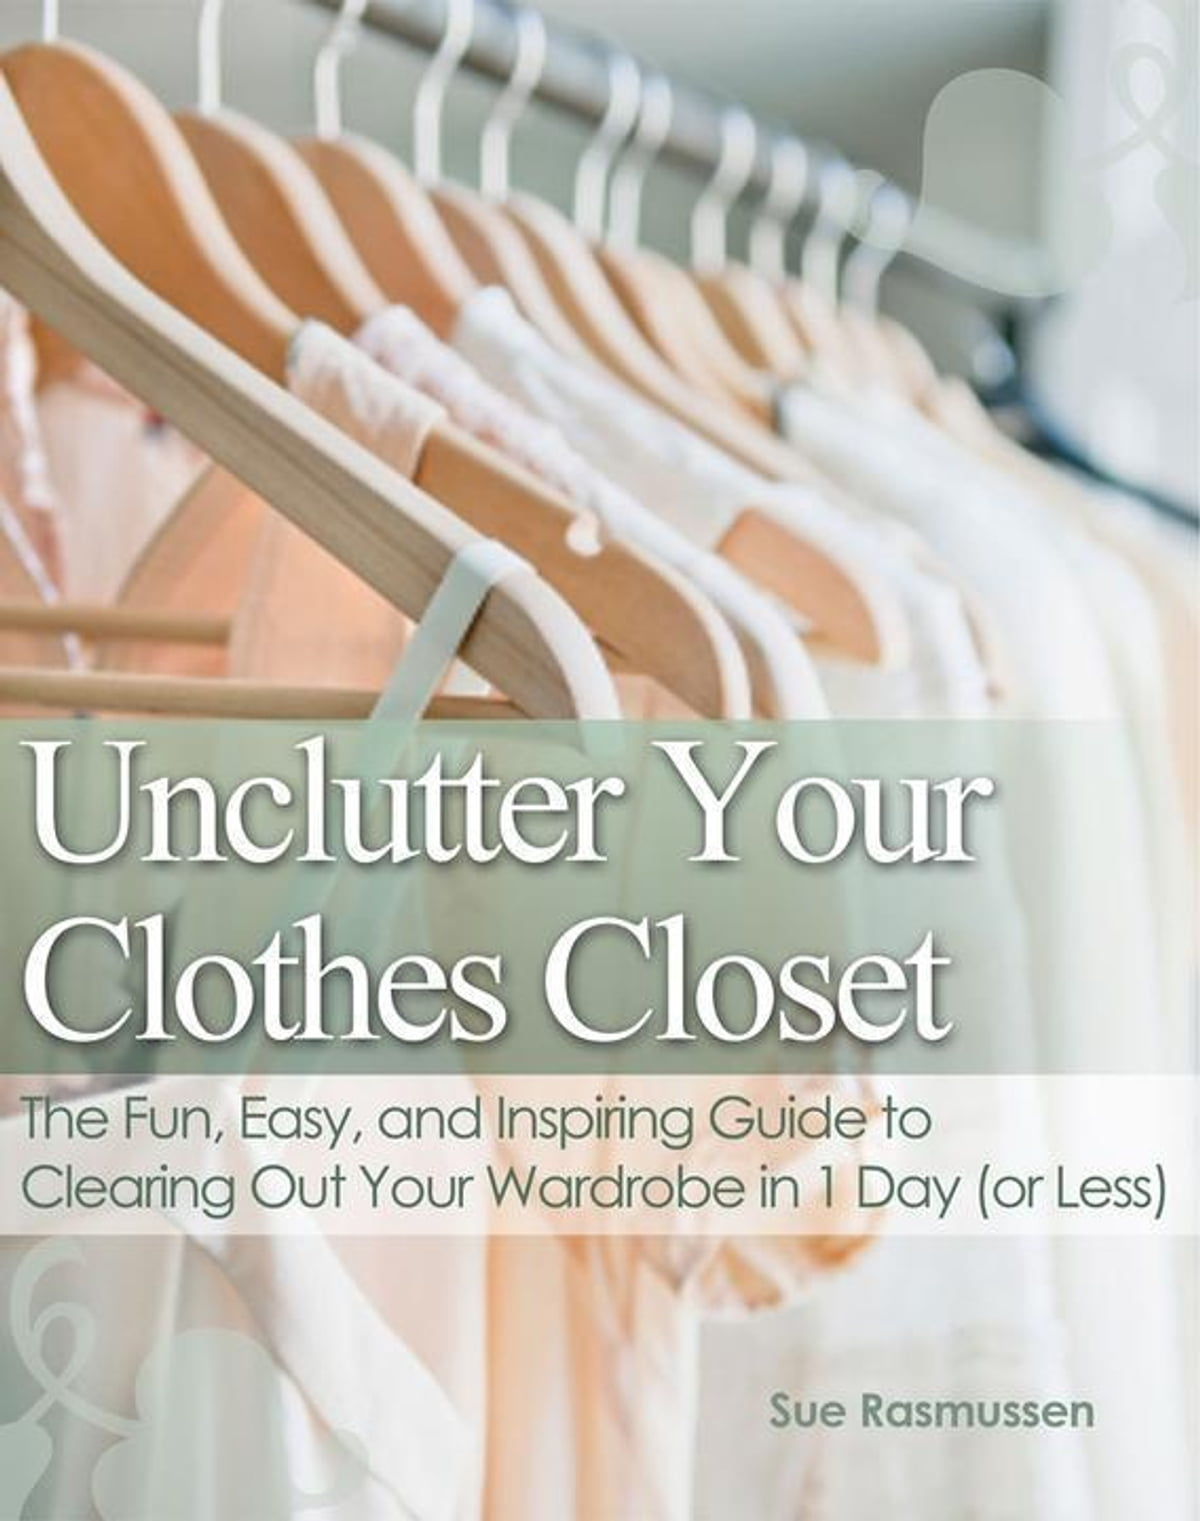 Unclutter your clothes closet the fun easy and inspiring guide unclutter your clothes closet the fun easy and inspiring guide to clearing out your wardrobe in 1 day or less ebook by sue rasmussen 9781476058672 fandeluxe PDF